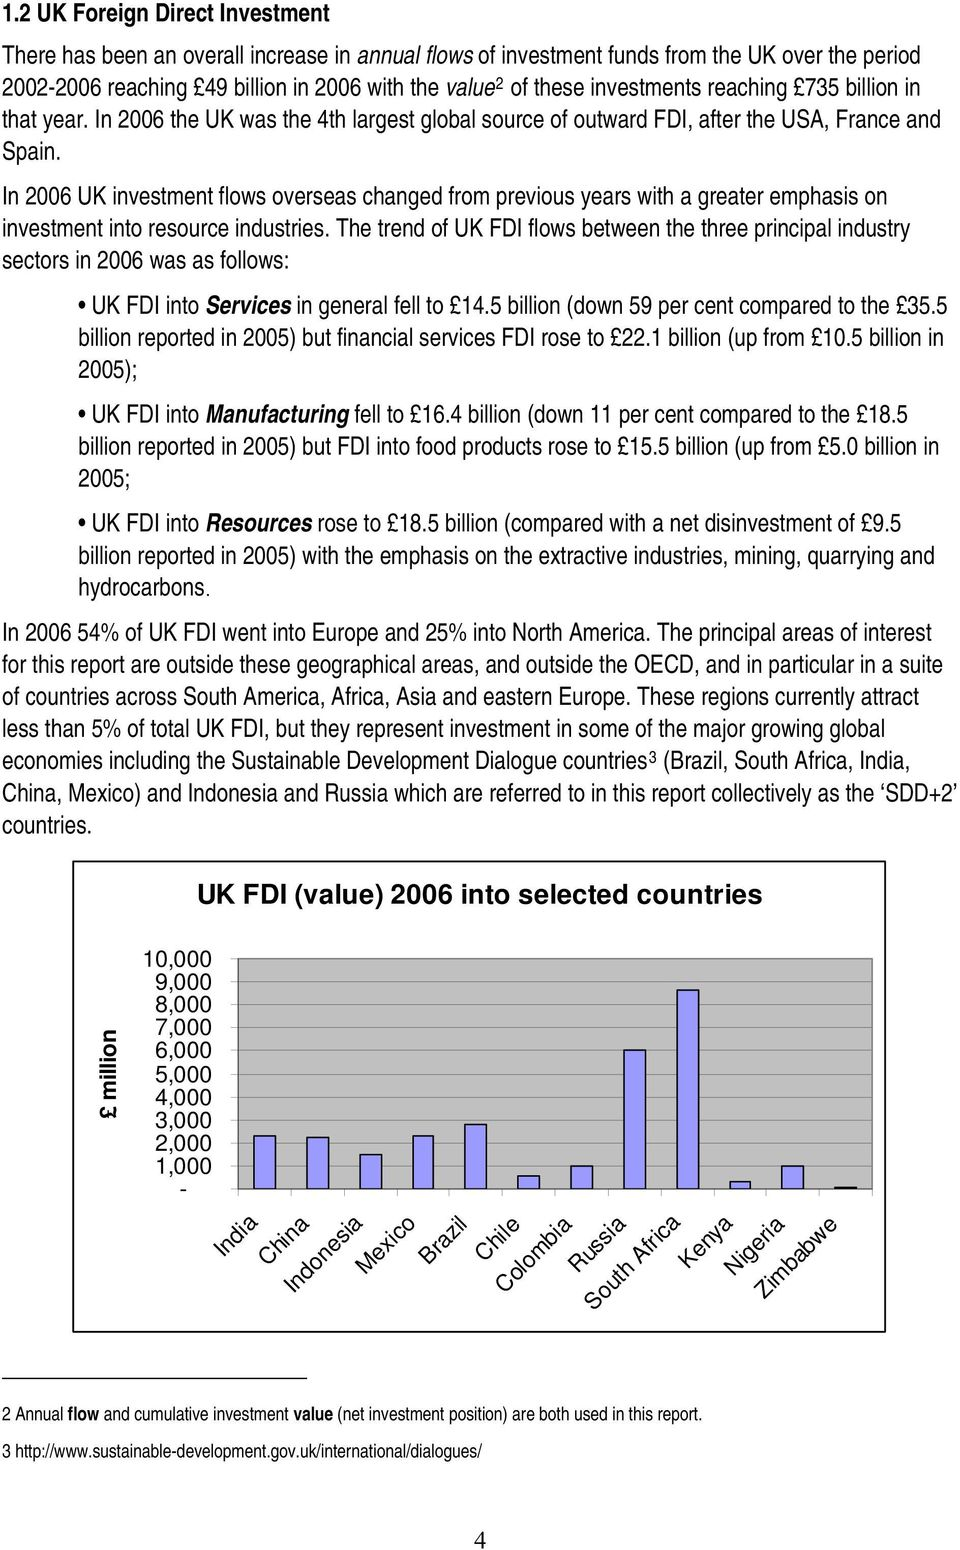 In 2006 UK investment flows overseas changed from previous years with a greater emphasis on investment into resource industries.